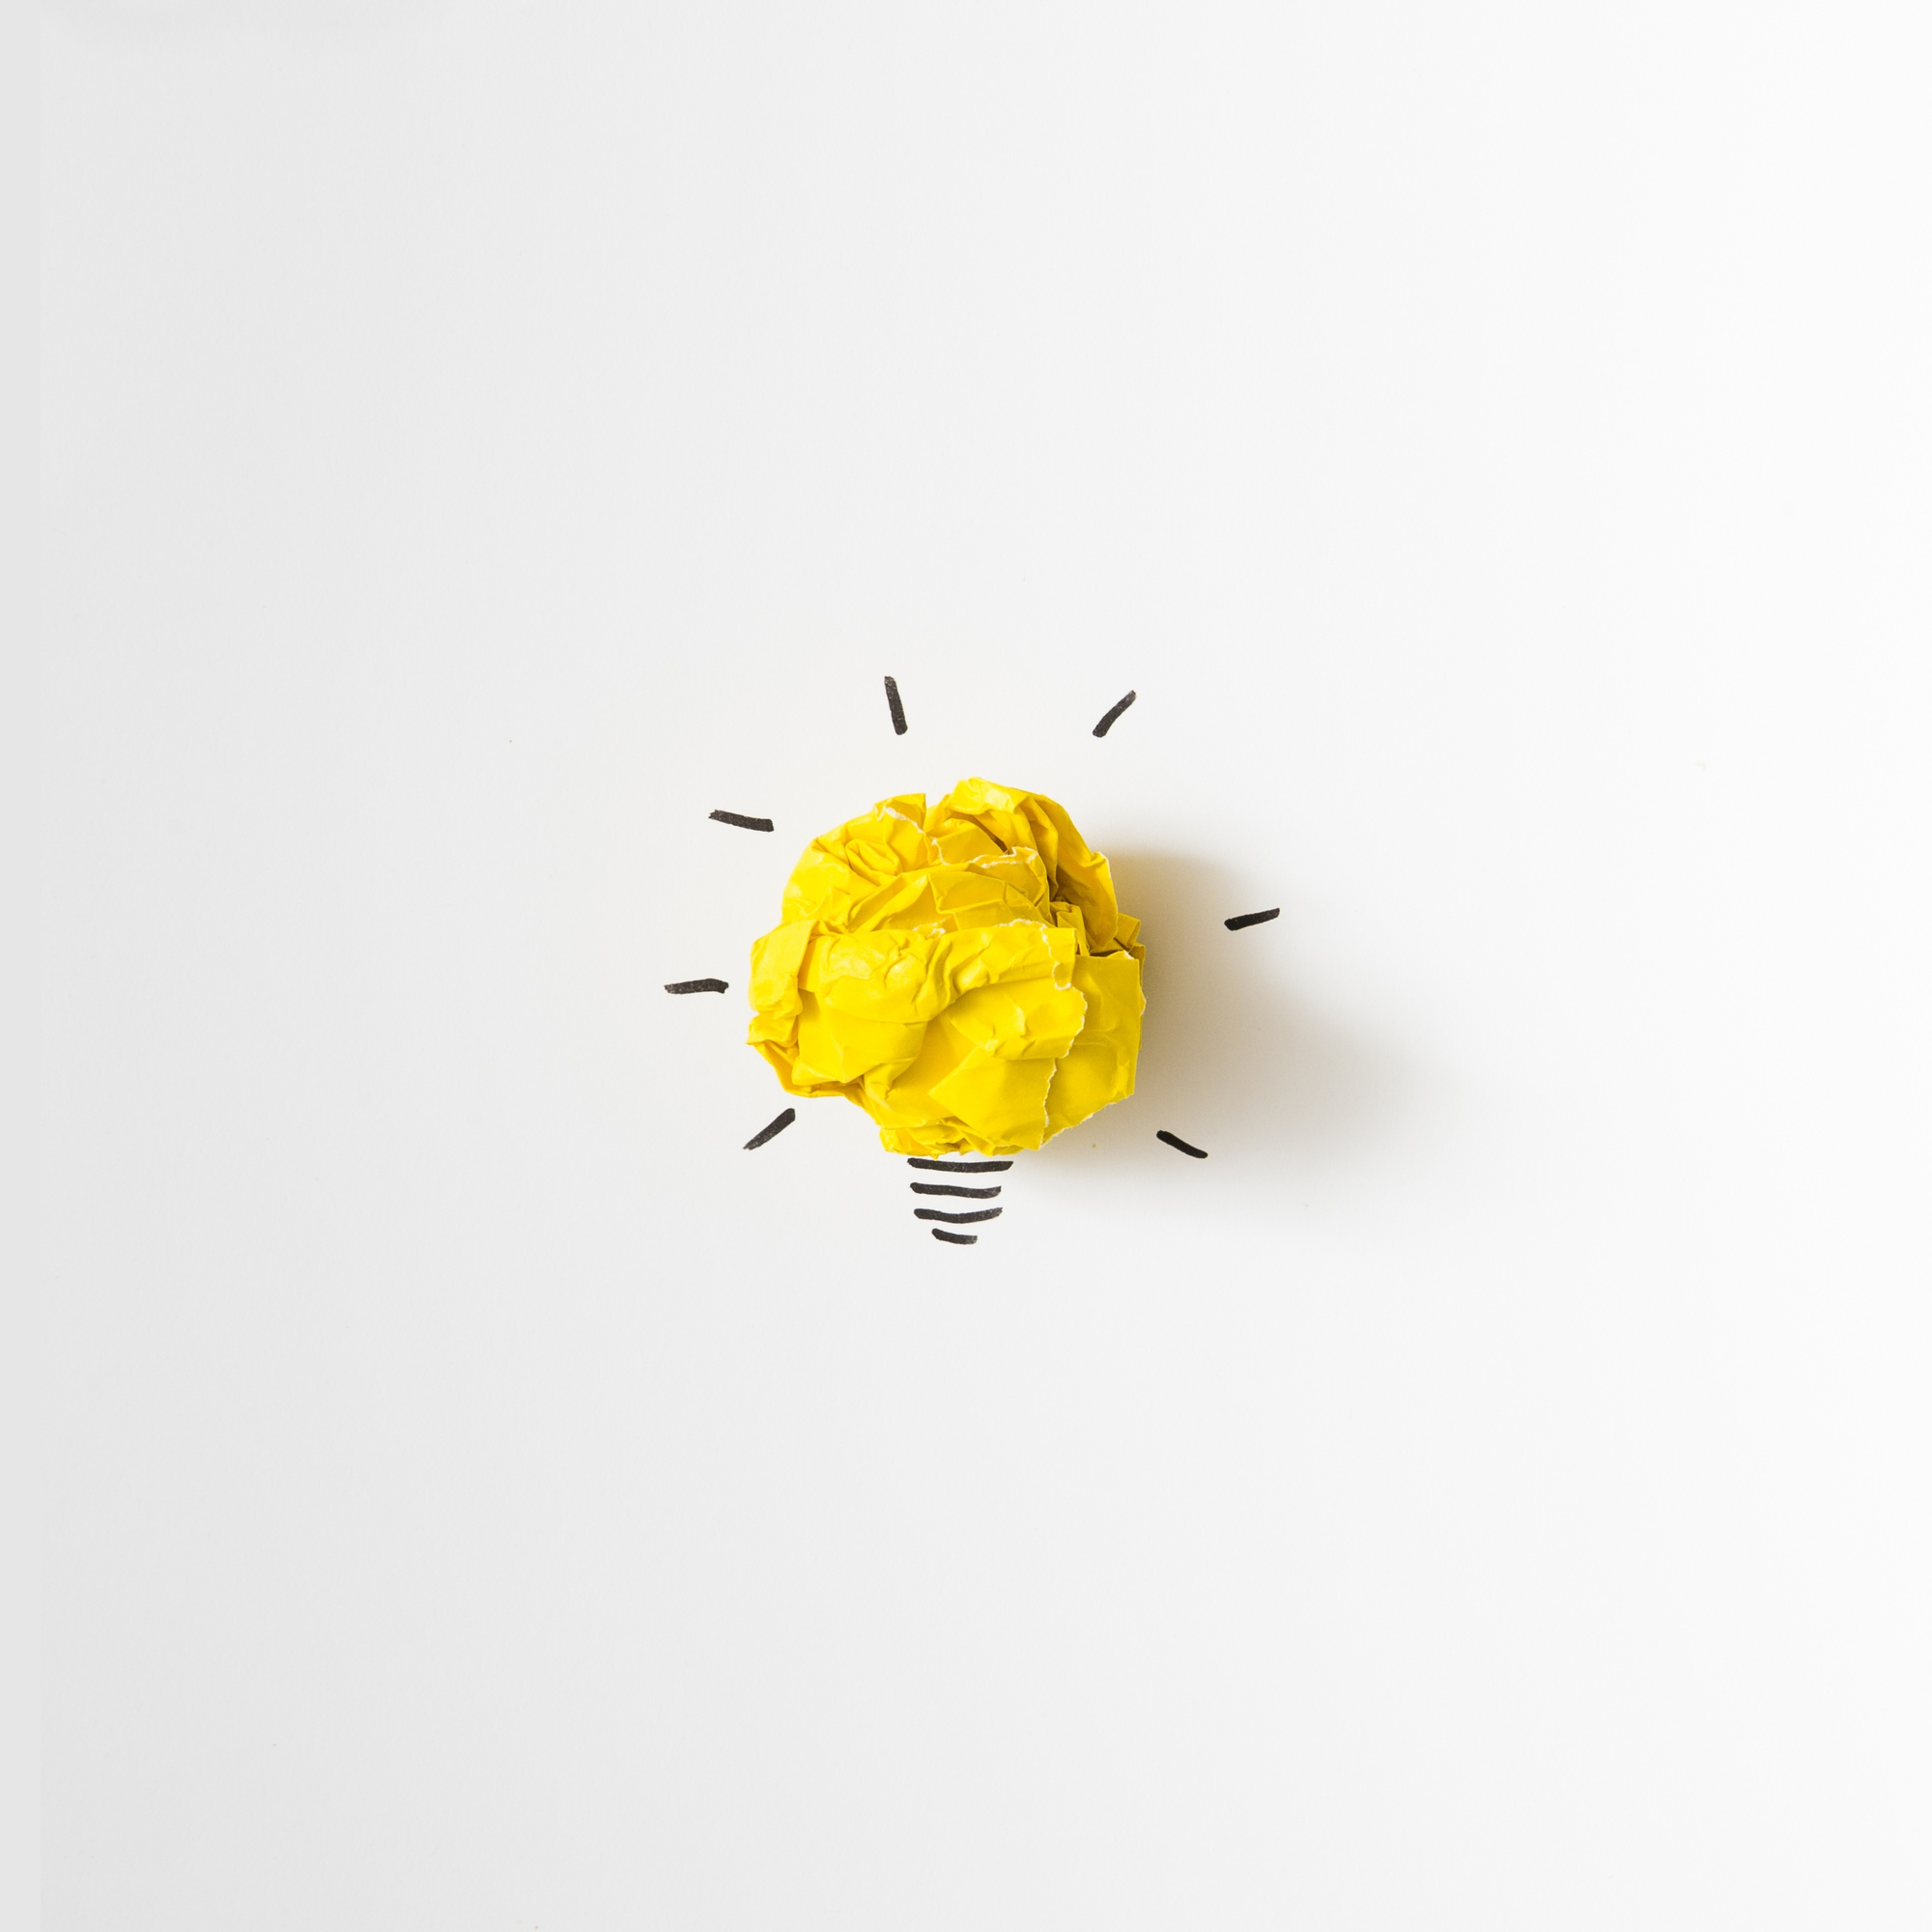 Inspiration crumpled yellow paper light bulb idea on white background